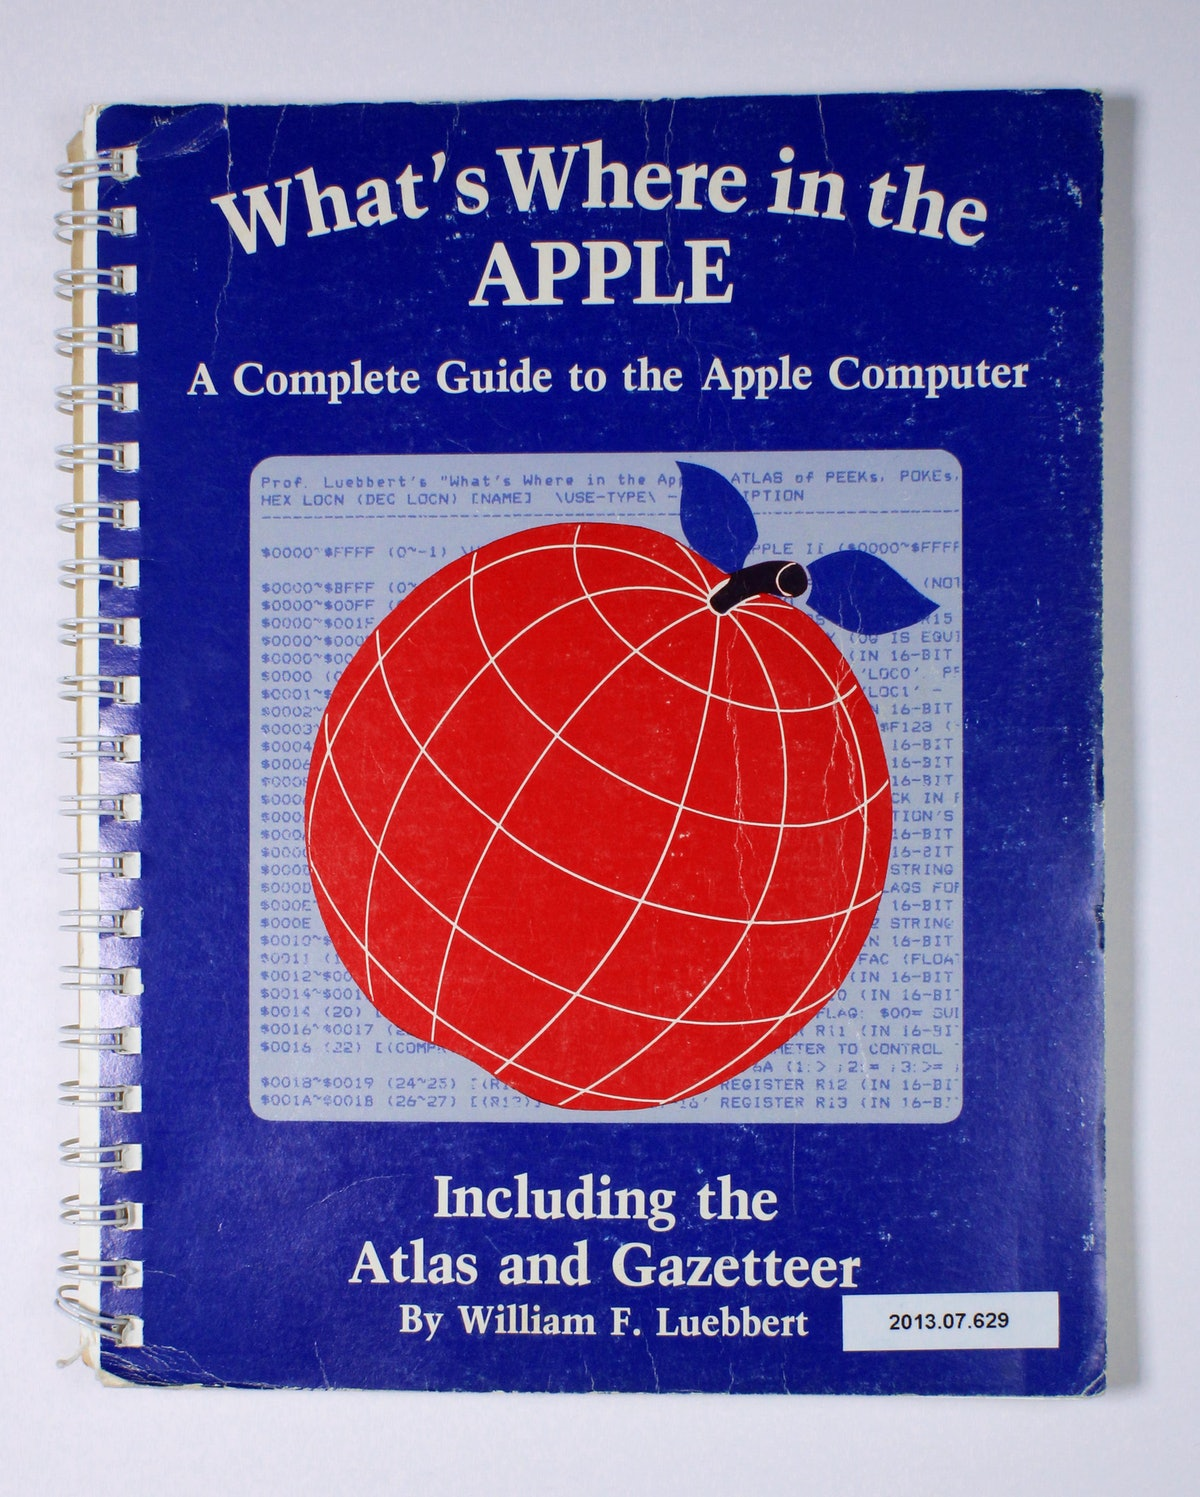 What's Where in the APPLE: A Complete Guide to the Apple Computer